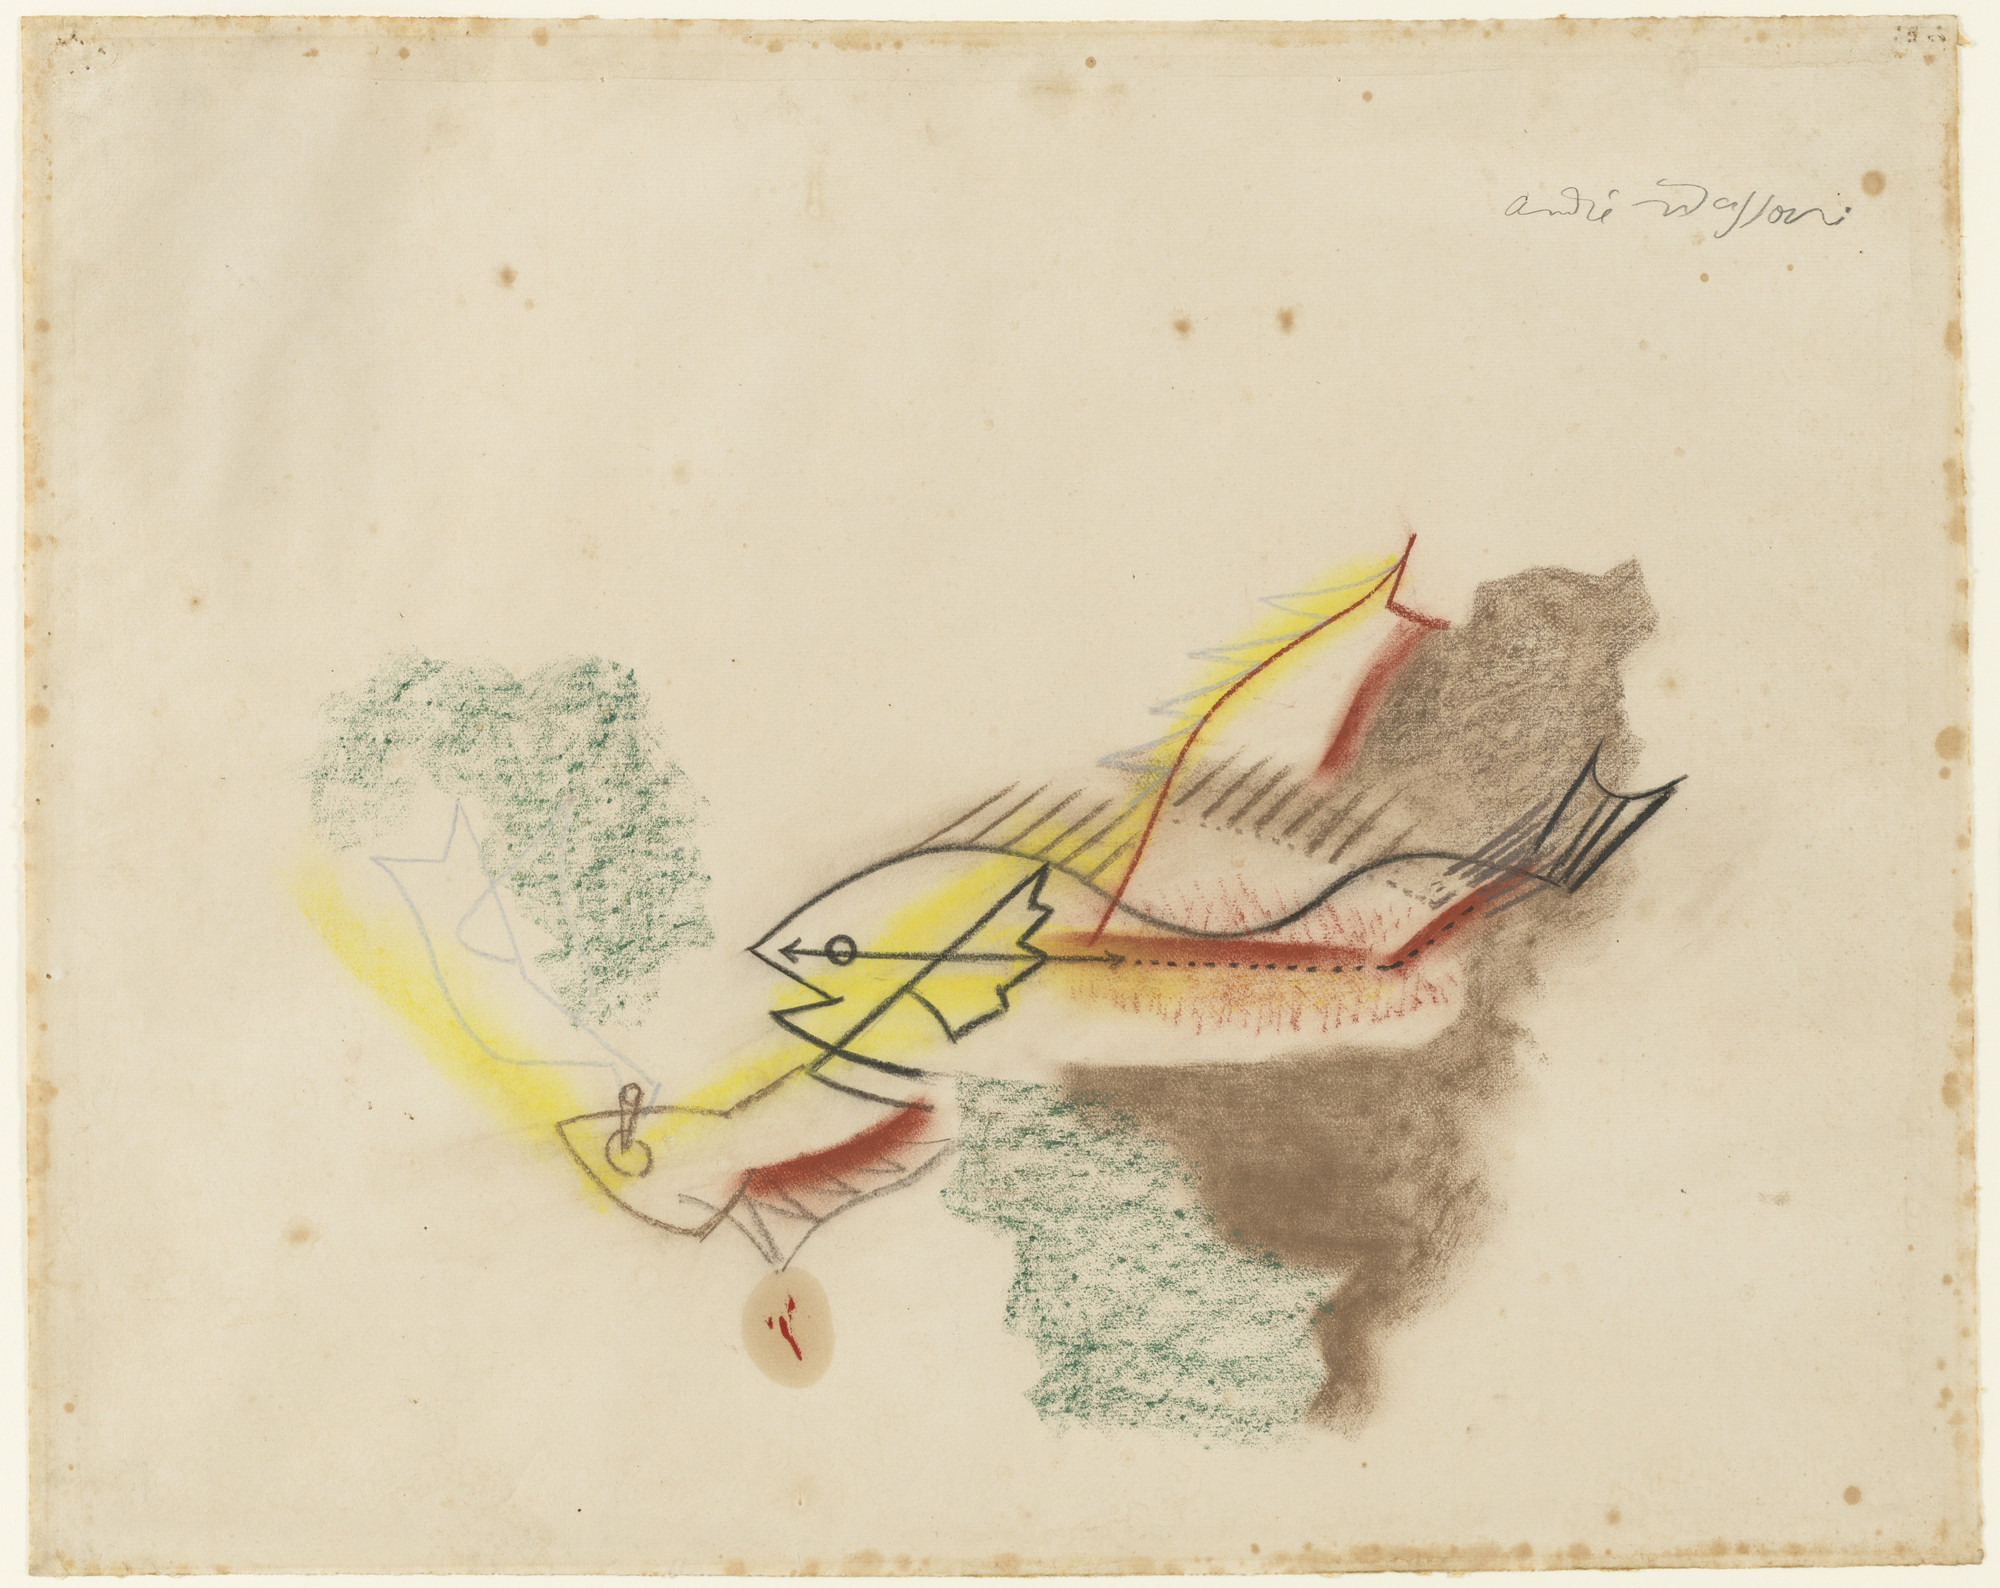 André Masson. Battle of the Fishes. (1927)